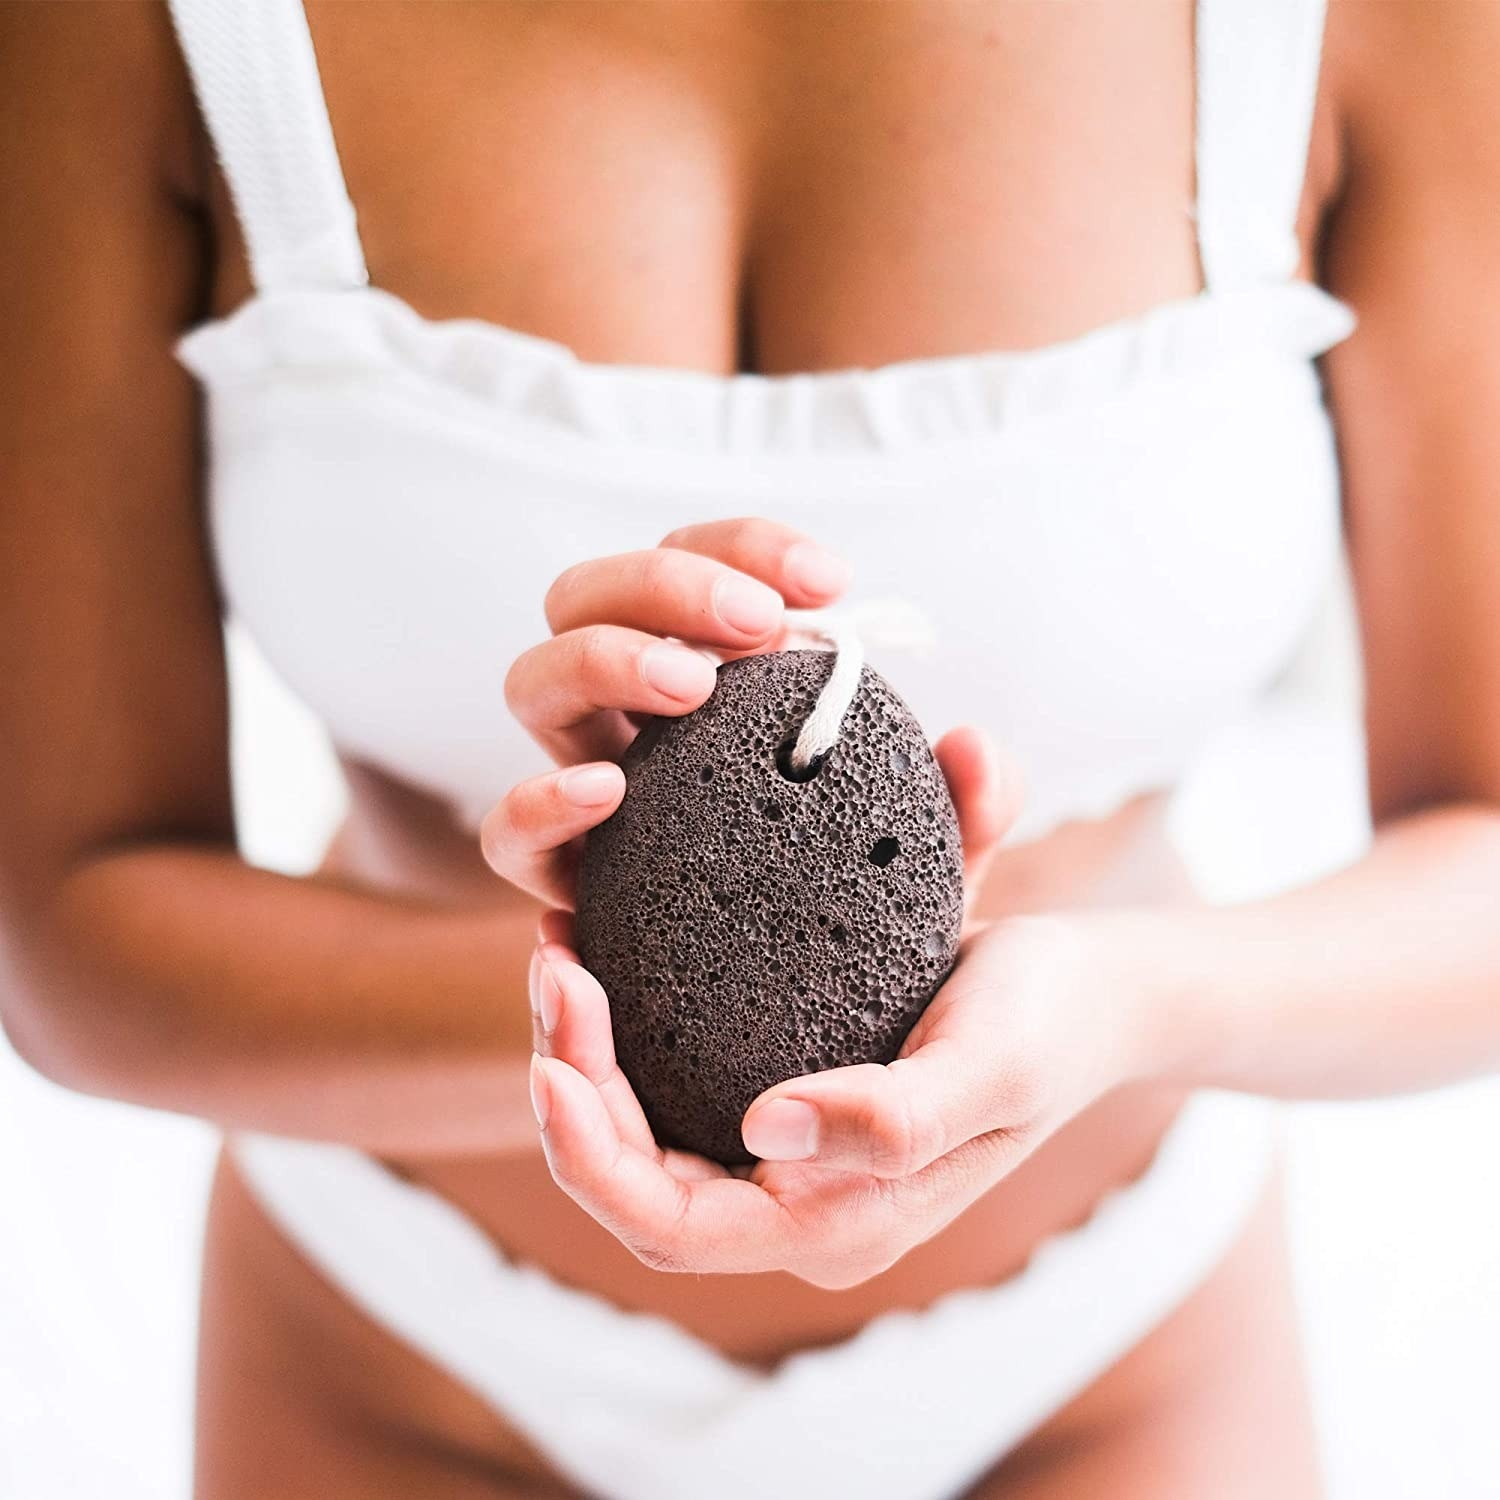 A person holds out a pumice stone towards the camera